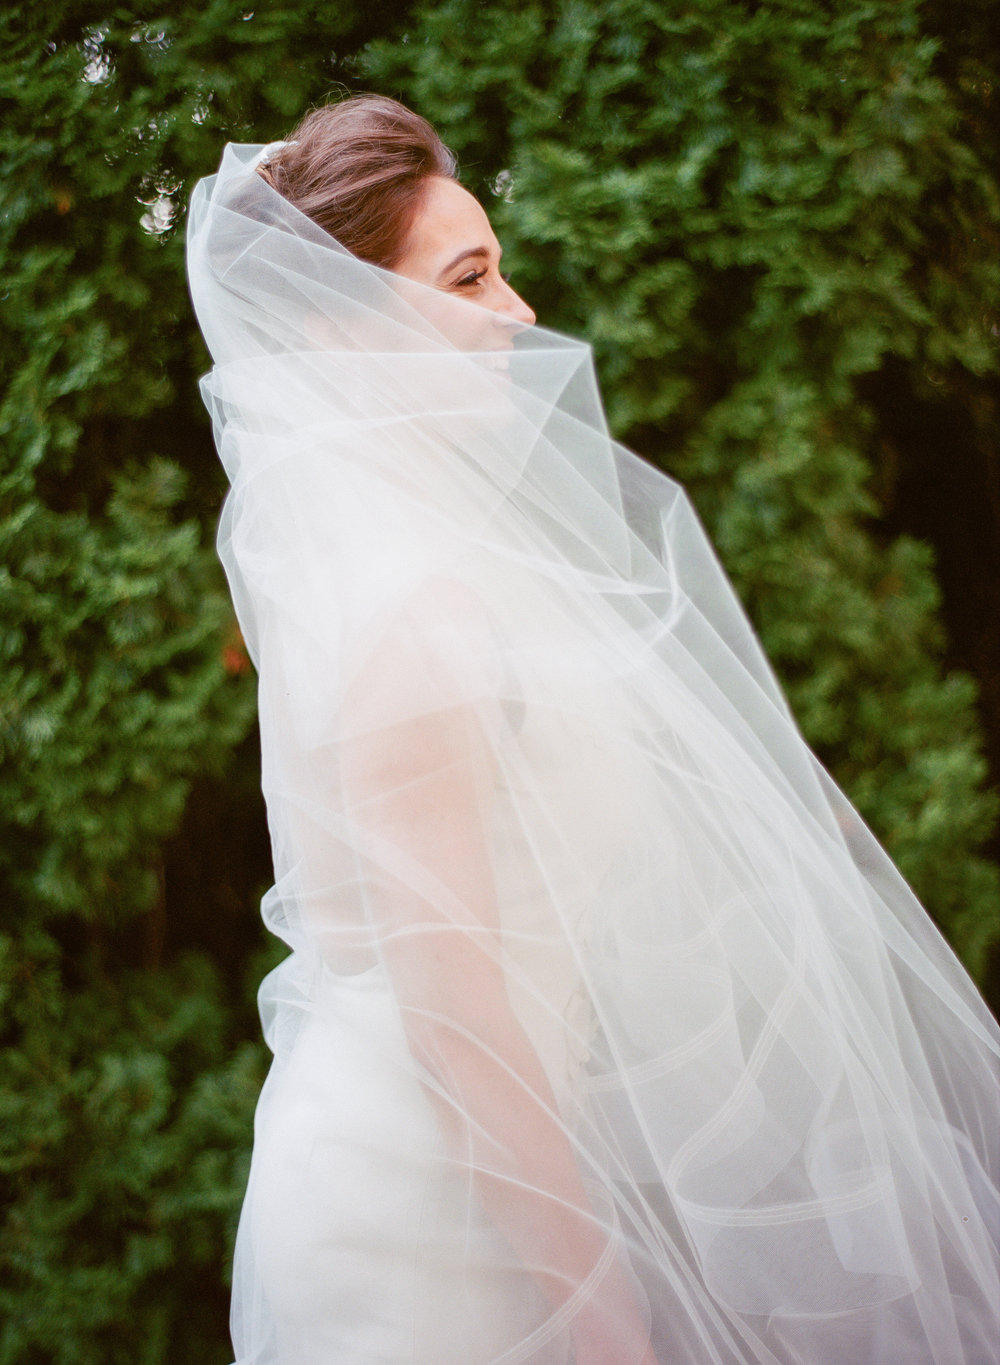 hannah_shih_hanaluluco_cj_isaac_charlie_juliet_ombre_chambray_prospect_park_brooklyn_wedding_34.jpg